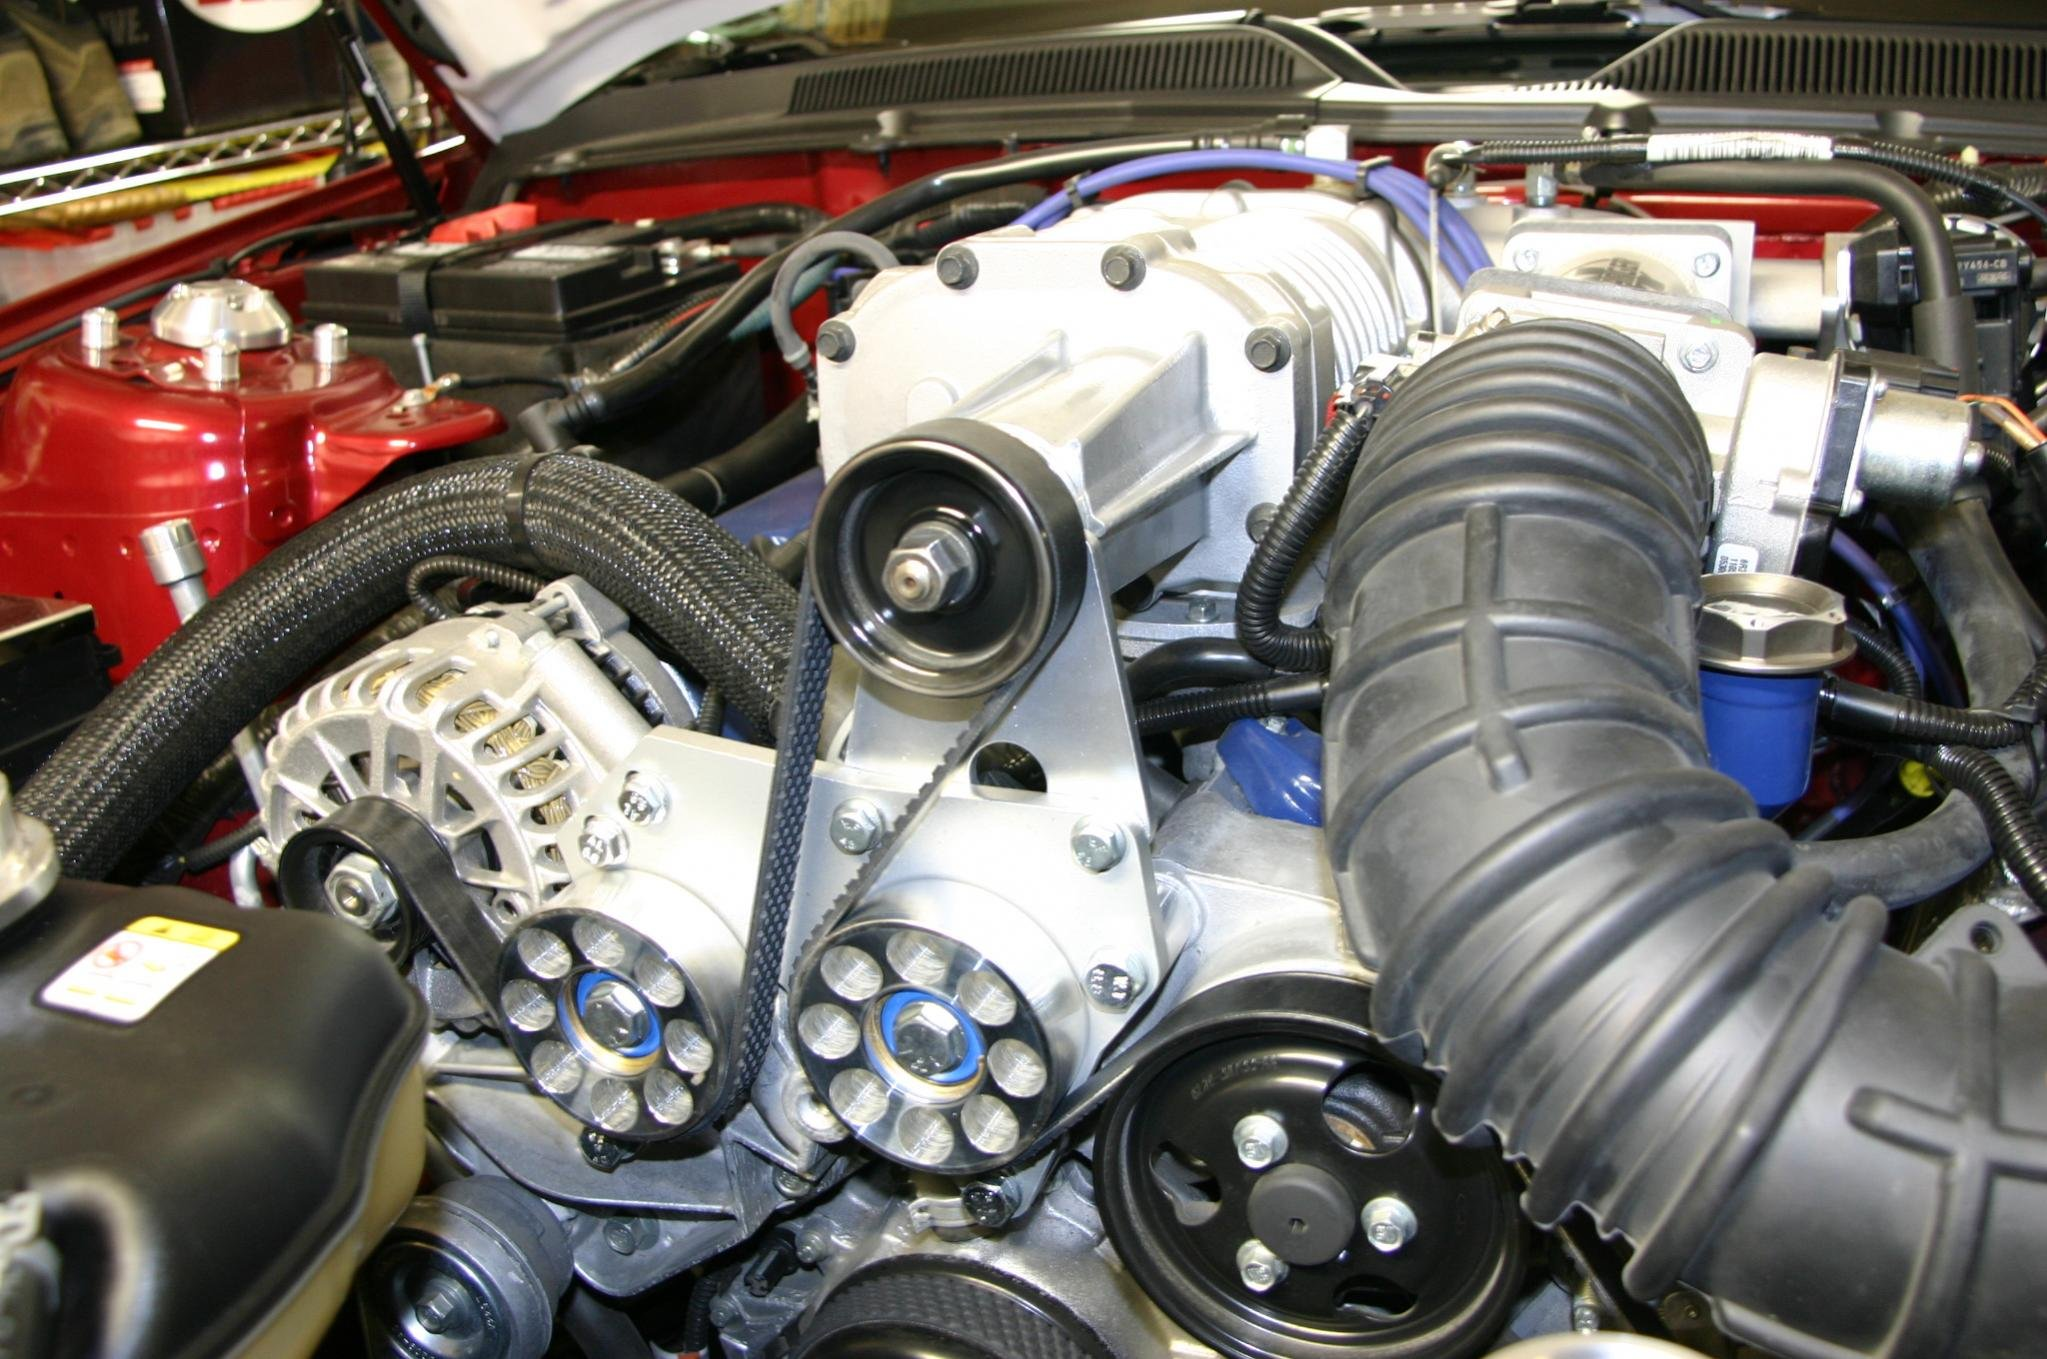 2007 Mustang V6 >> 2007 Mustang V6-What Supercharger to use? - Ford Mustang Forum